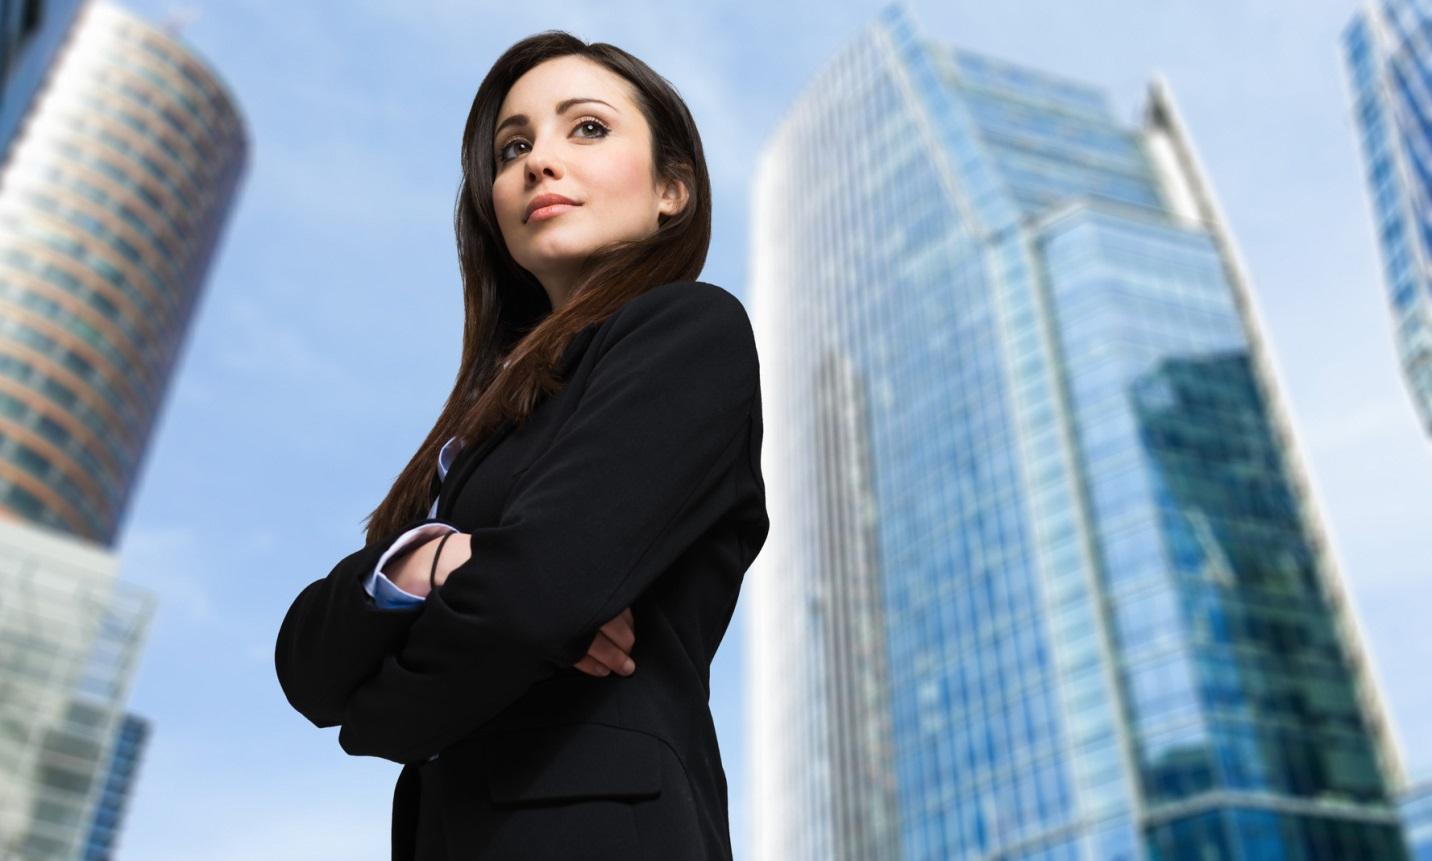 Even successful women CEOs more likely to be fired